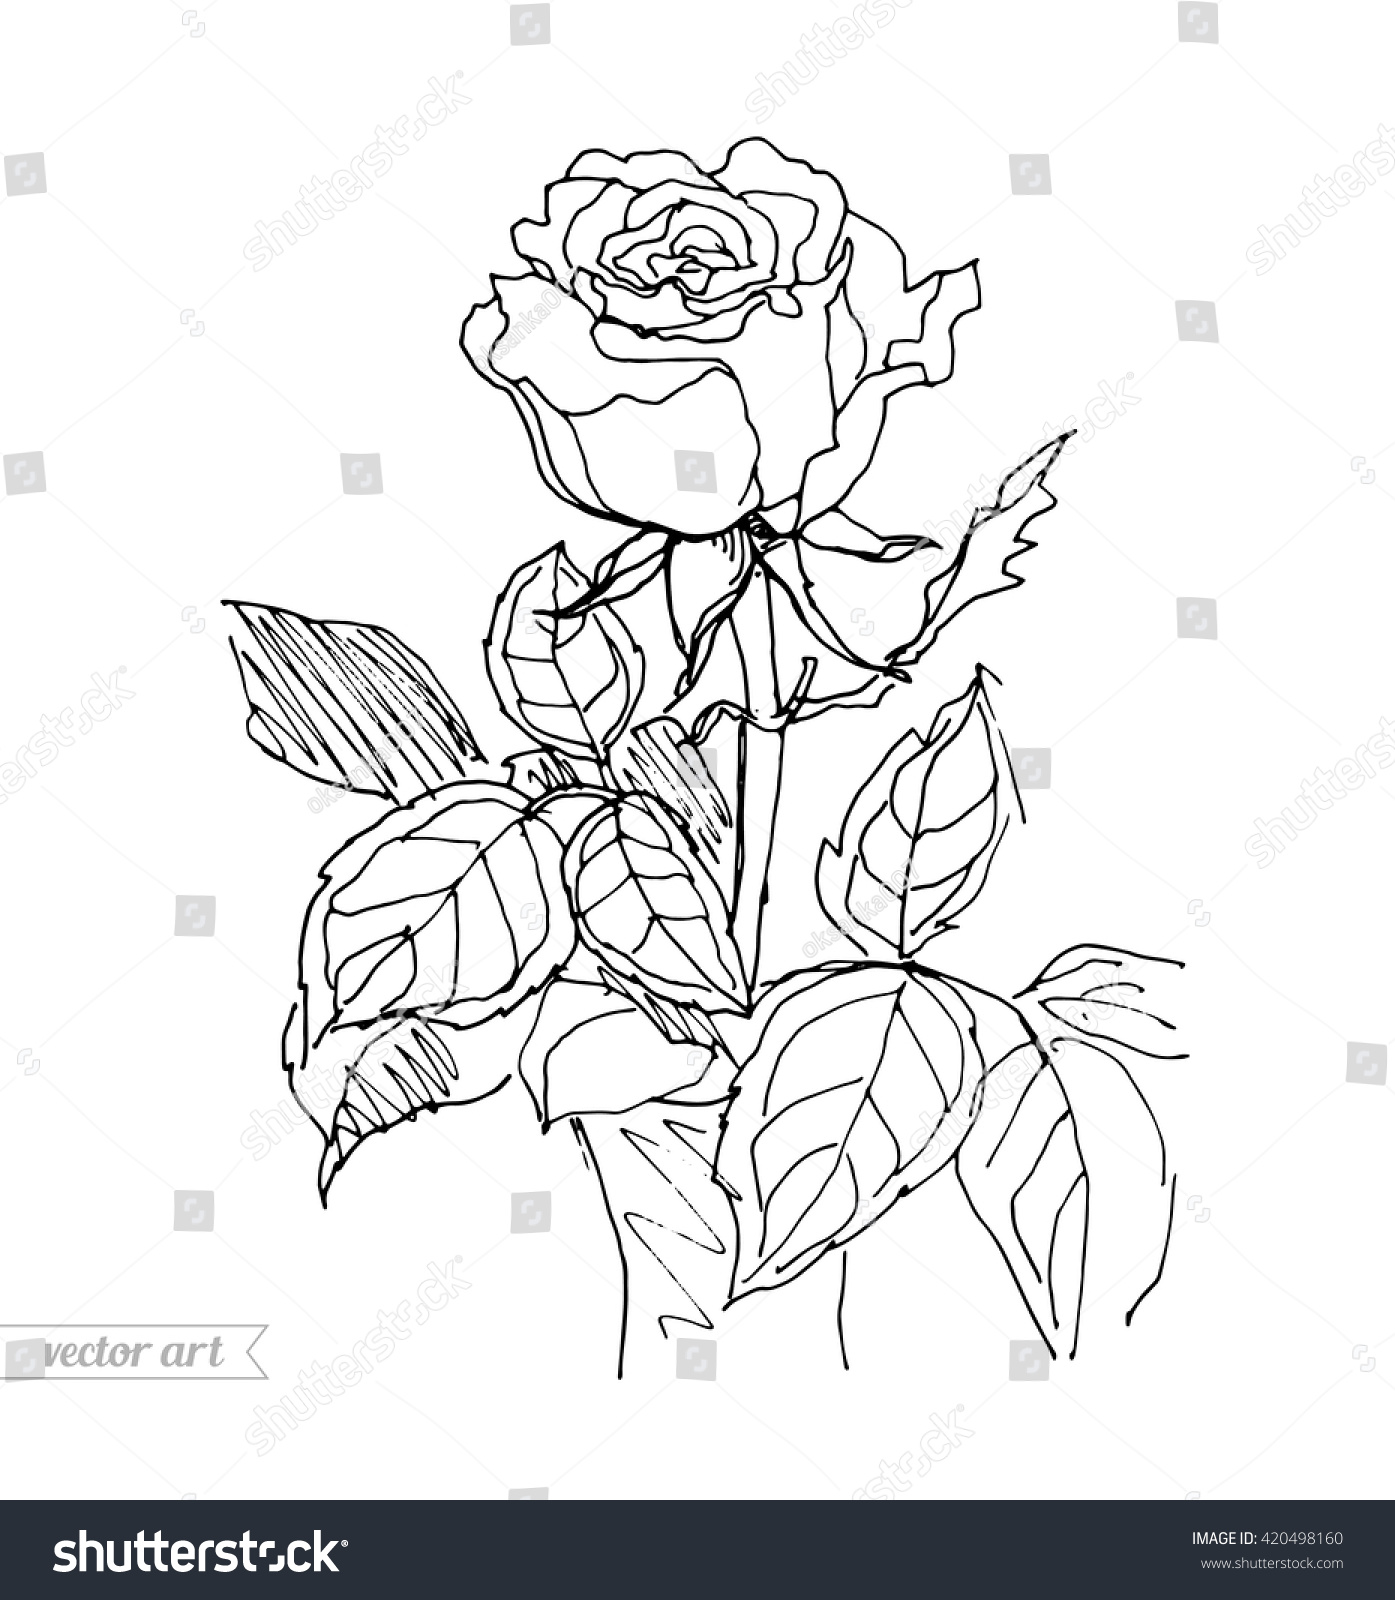 rose in vase isolated rose in pot vector sketch artwork coloring book page